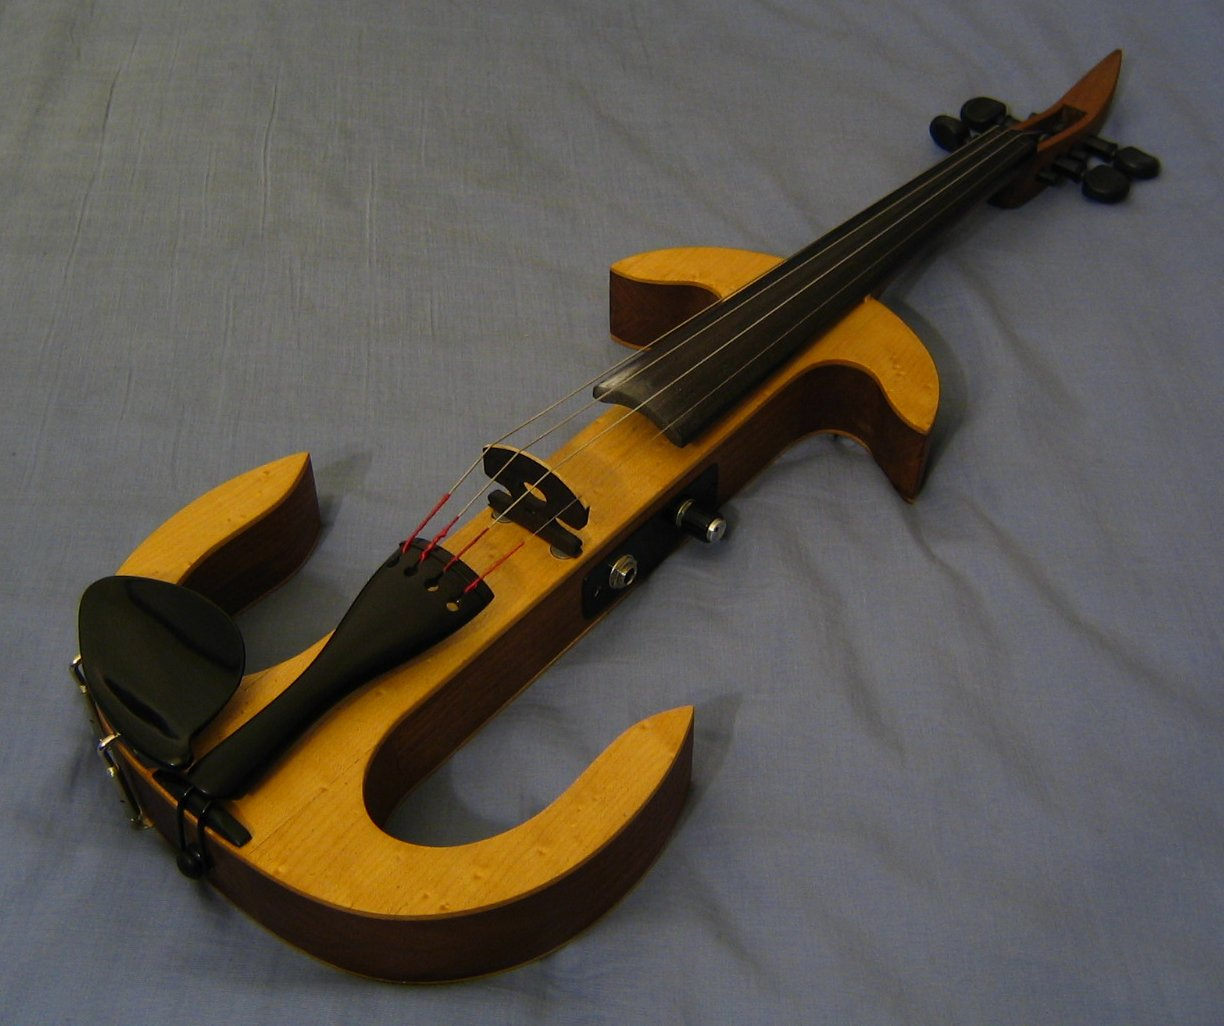 Photograph of a homemade electric violin